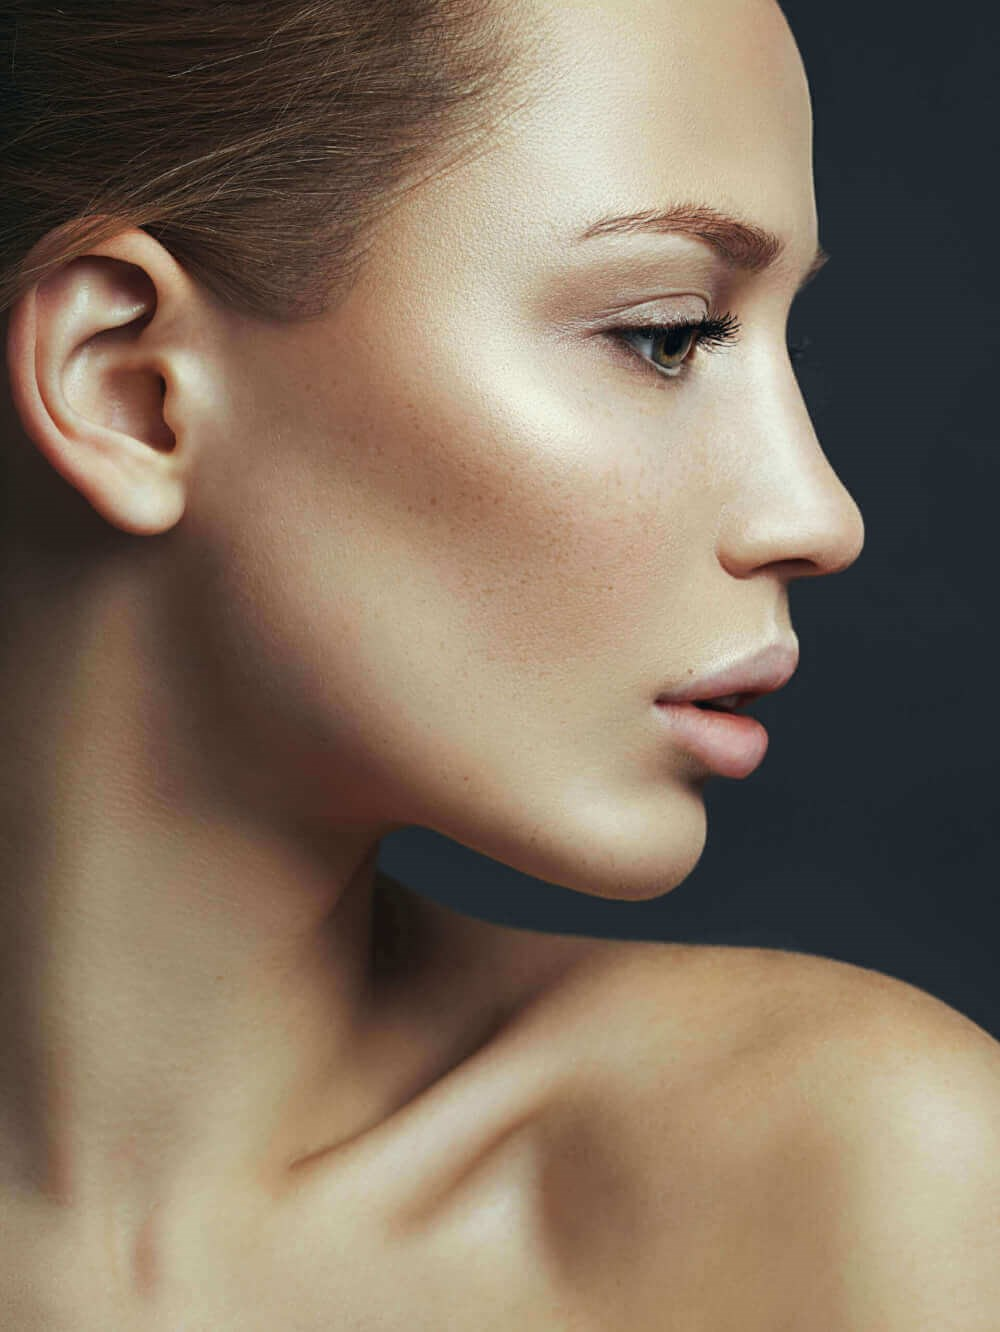 side profile of a woman